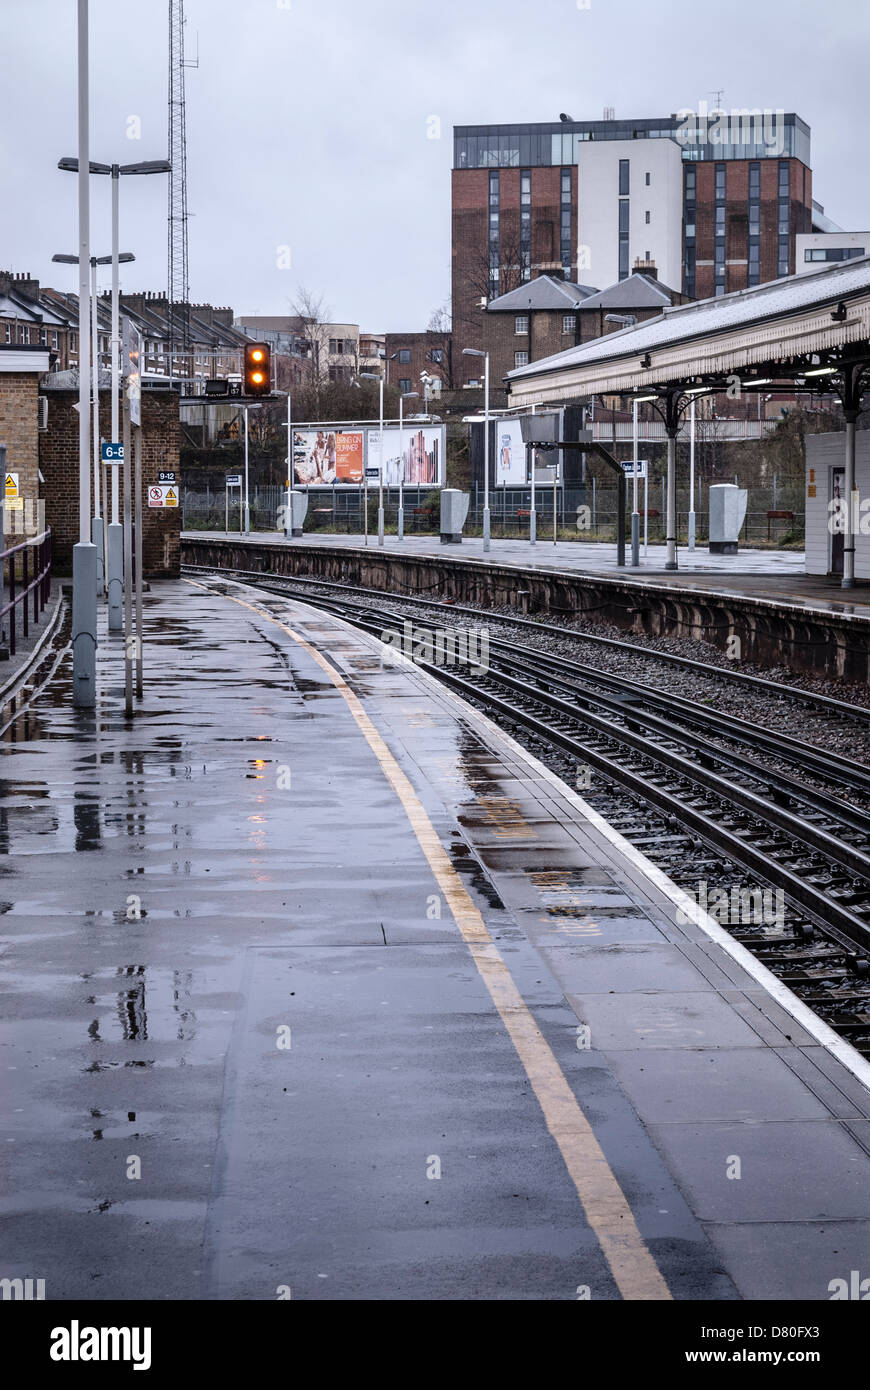 deserted clapham junction platforms and railway tracks in the rain - Stock Image